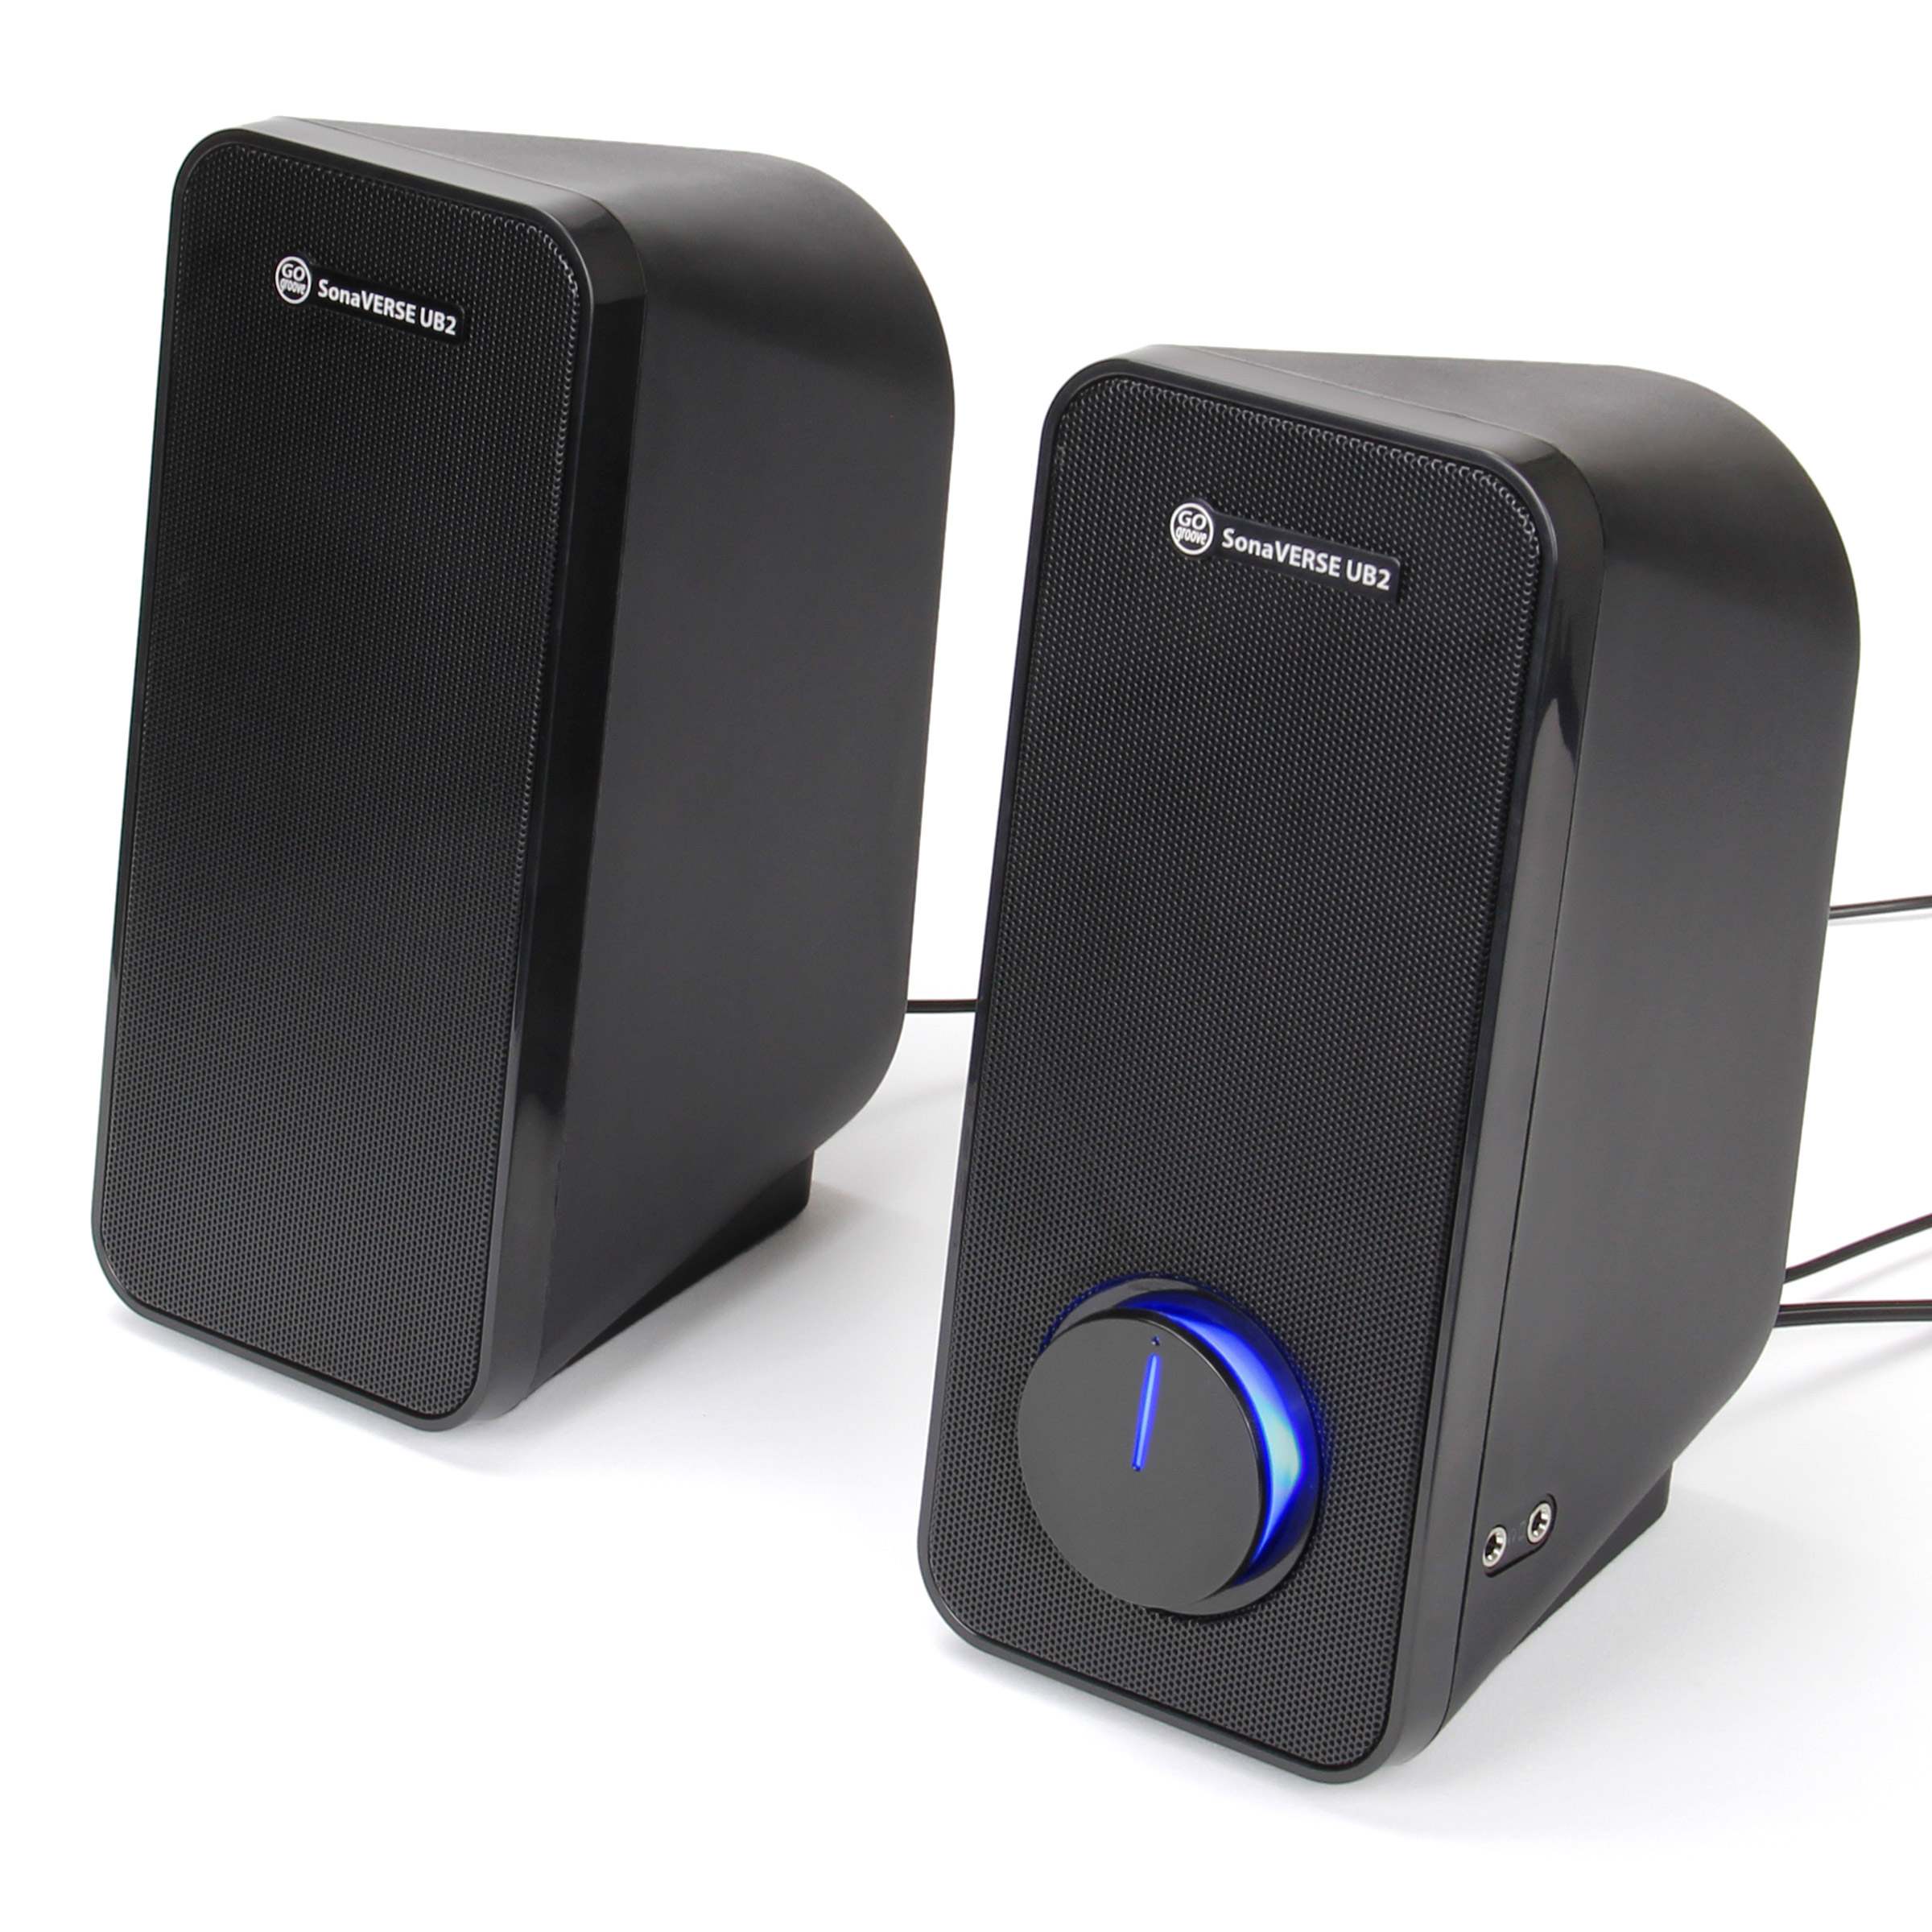 GOgroove Computer Speakers - SonaVERSE UB2 Multimedia USB Powered PC Speakers for Desktops & Laptops - 2 Way Drivers Enhance Clarity and Bass, Built-in Headphone & AUX Input Jacks, LED Volume Knob